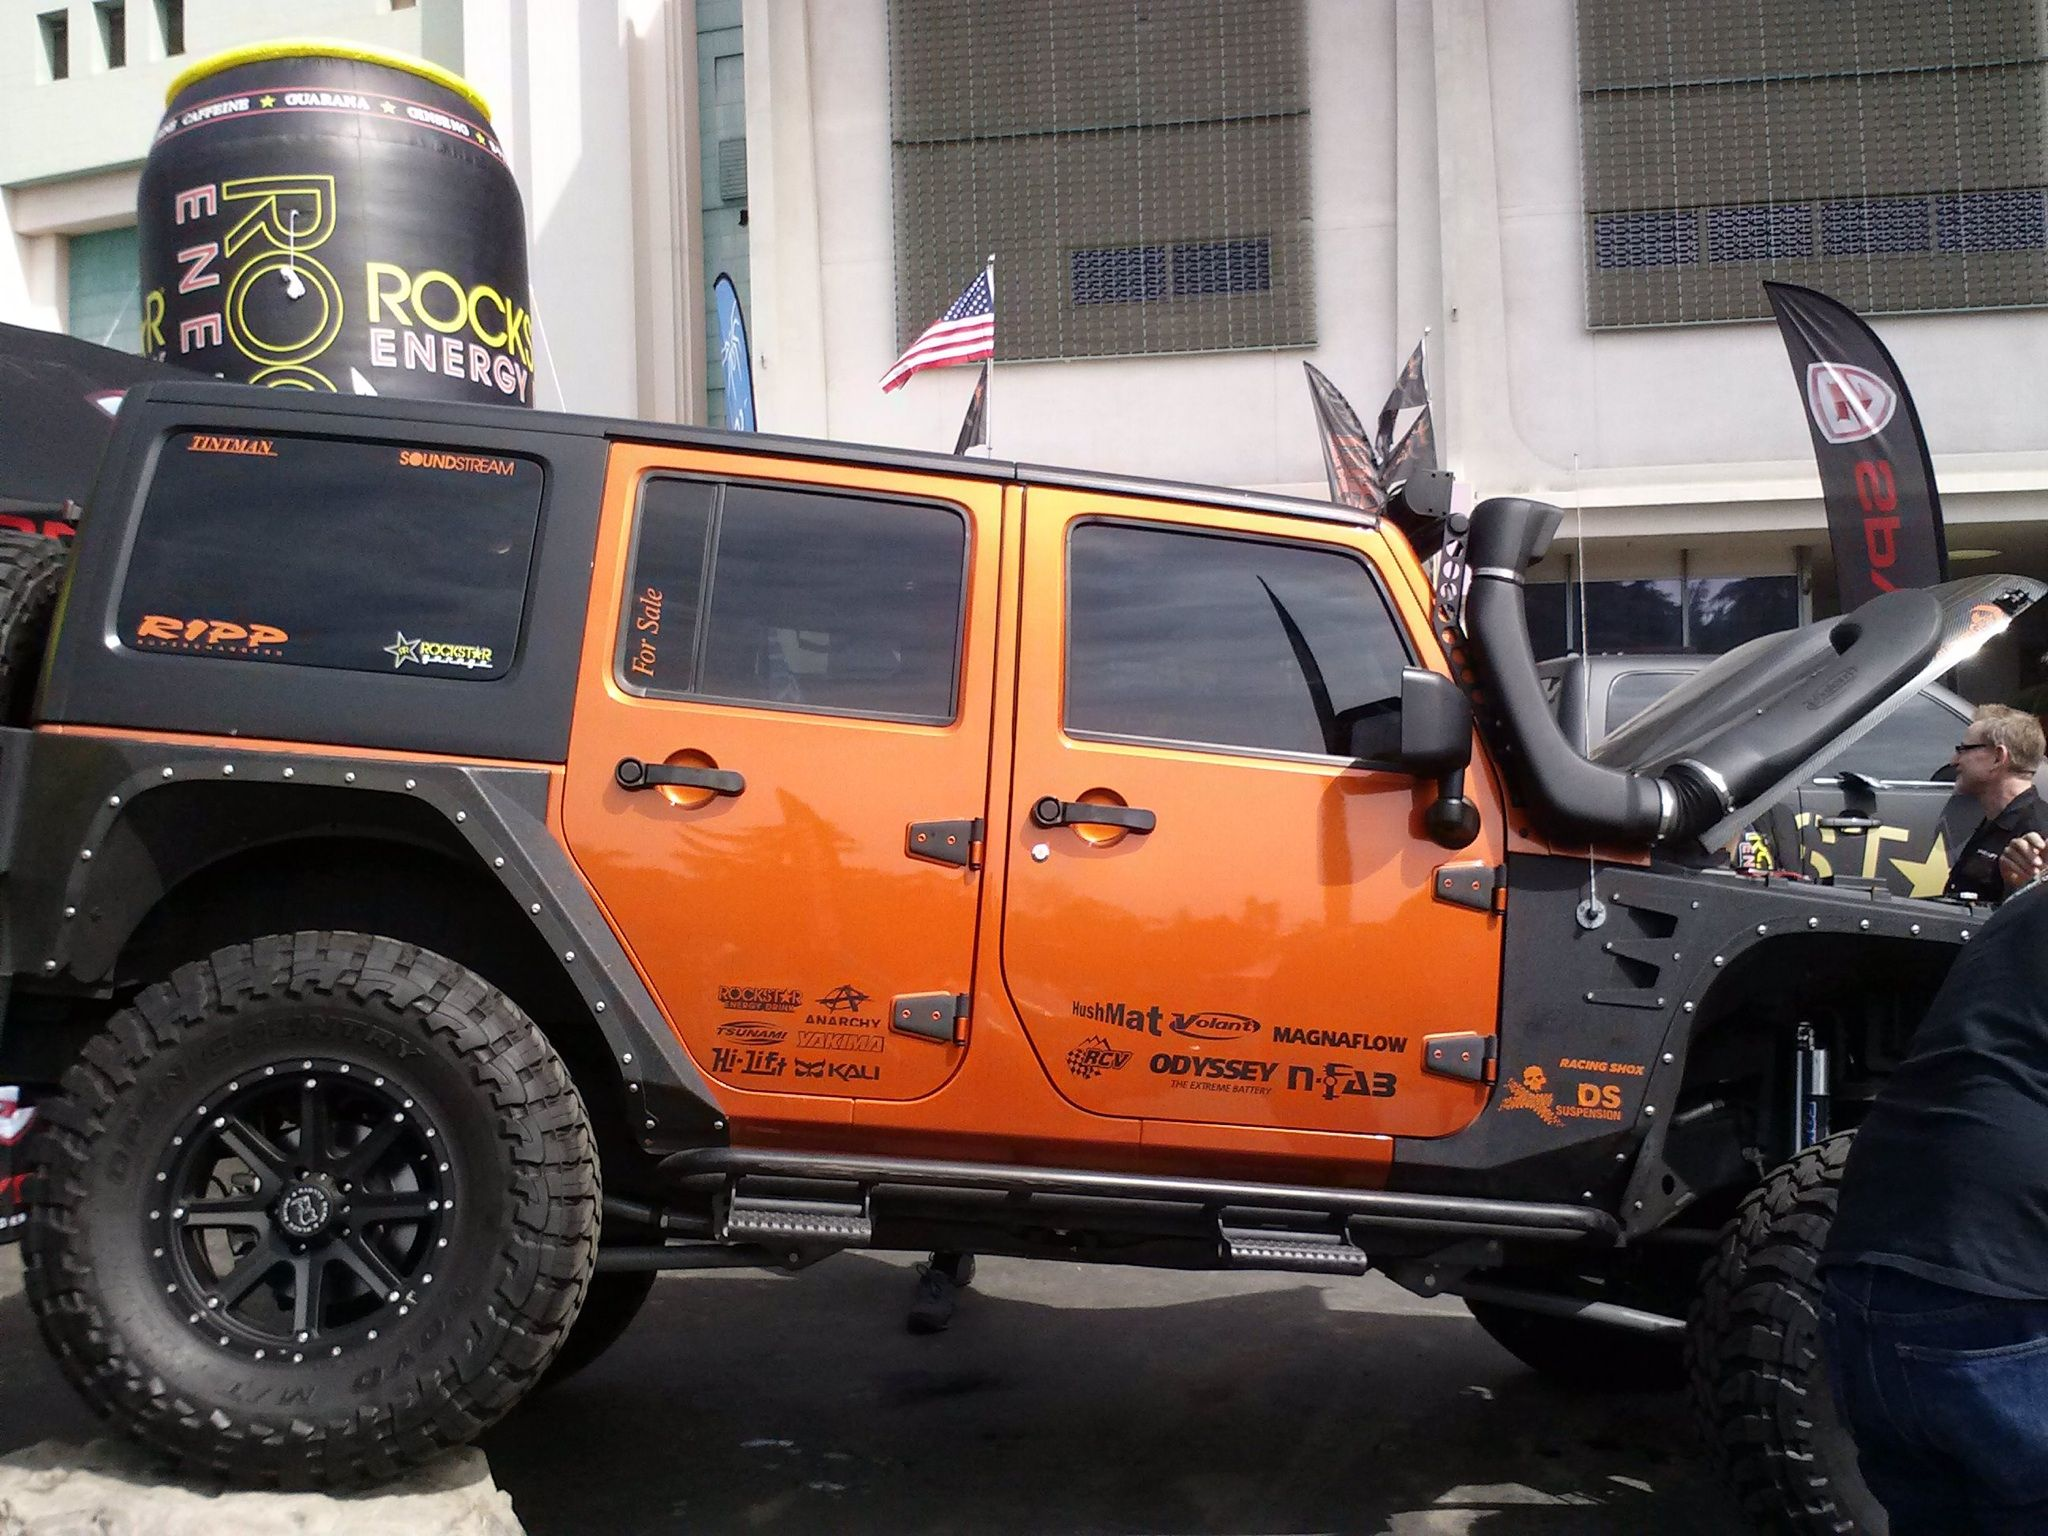 Don A Vee Chrysler Jeep 50th Anniversary Event | Don A Vee Chrysler Jeep  Community Events | Pinterest | Chrysler Jeep And Jeeps